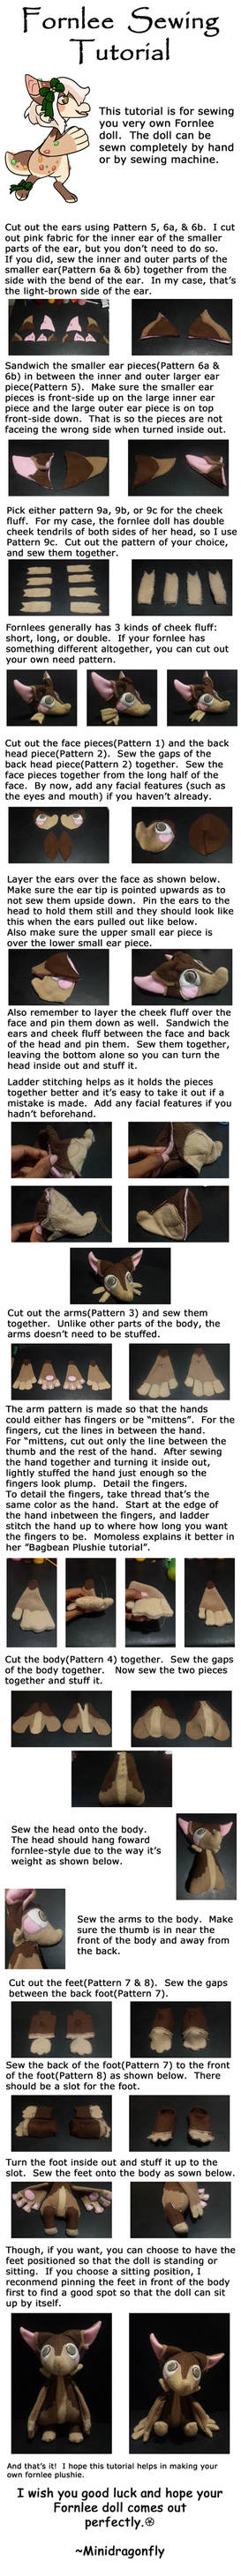 Fornlee Plushie Sewing Tutorial